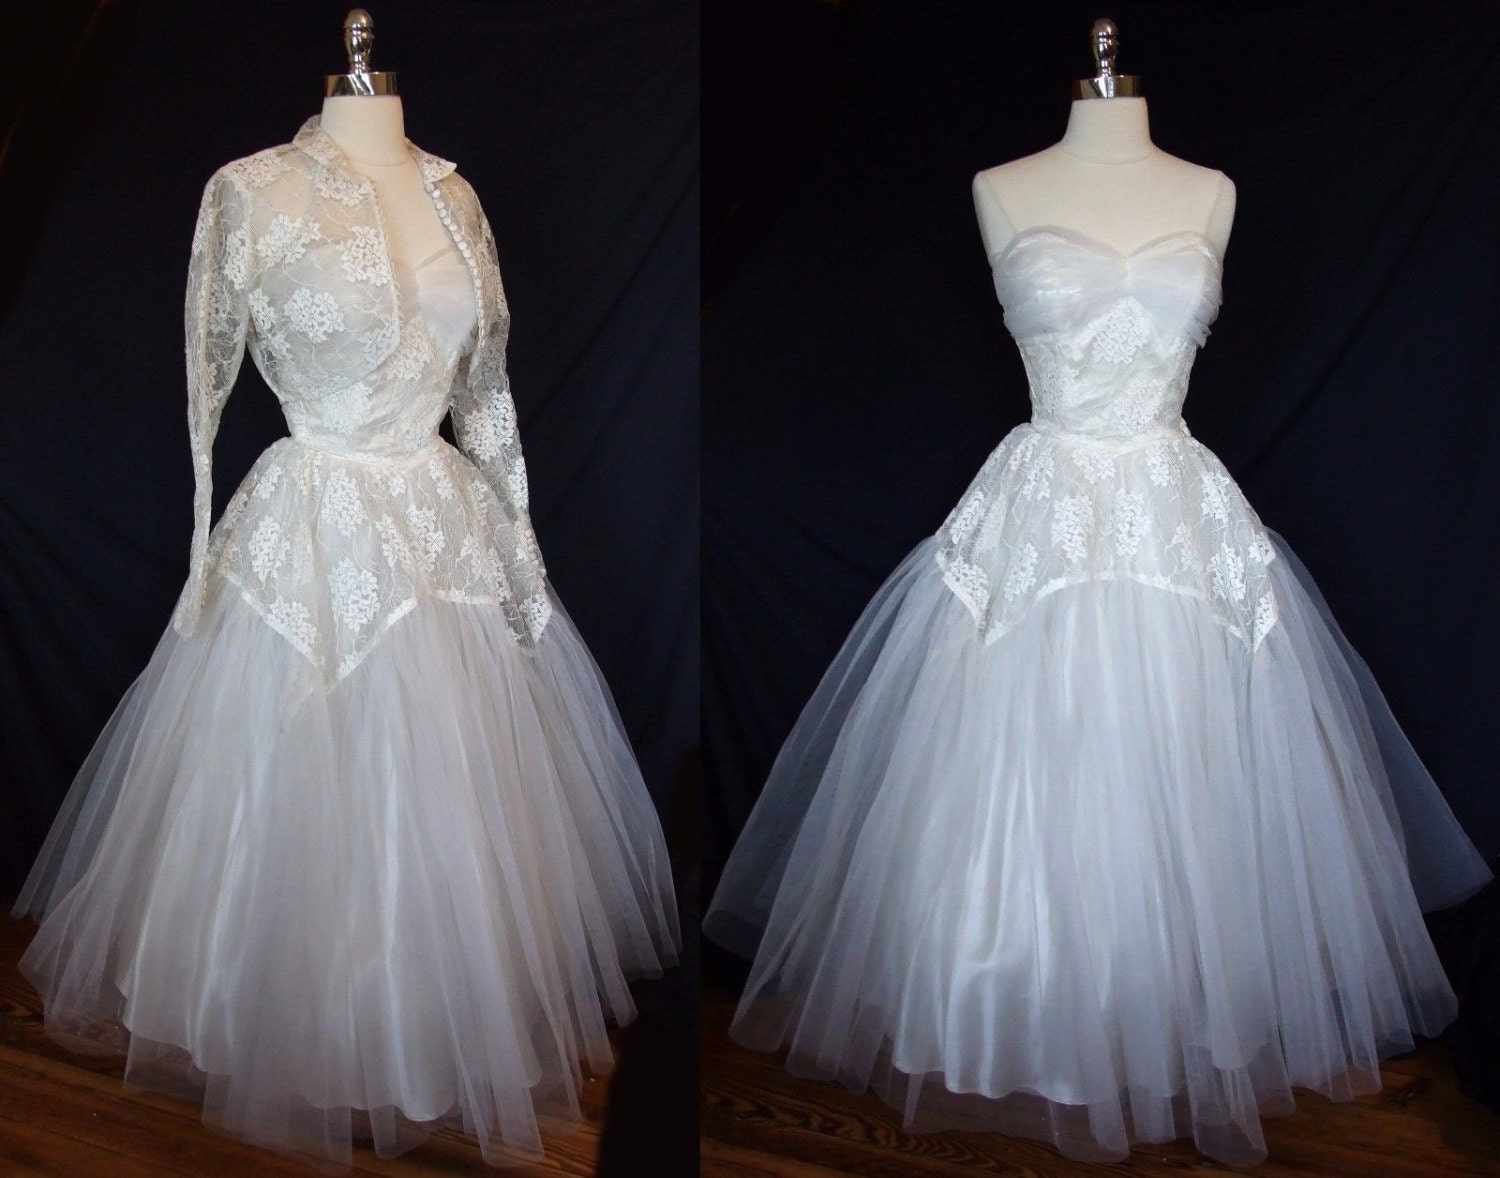 SALE Wedding Dress Vintage 1950s Chantilly Tulle Lace